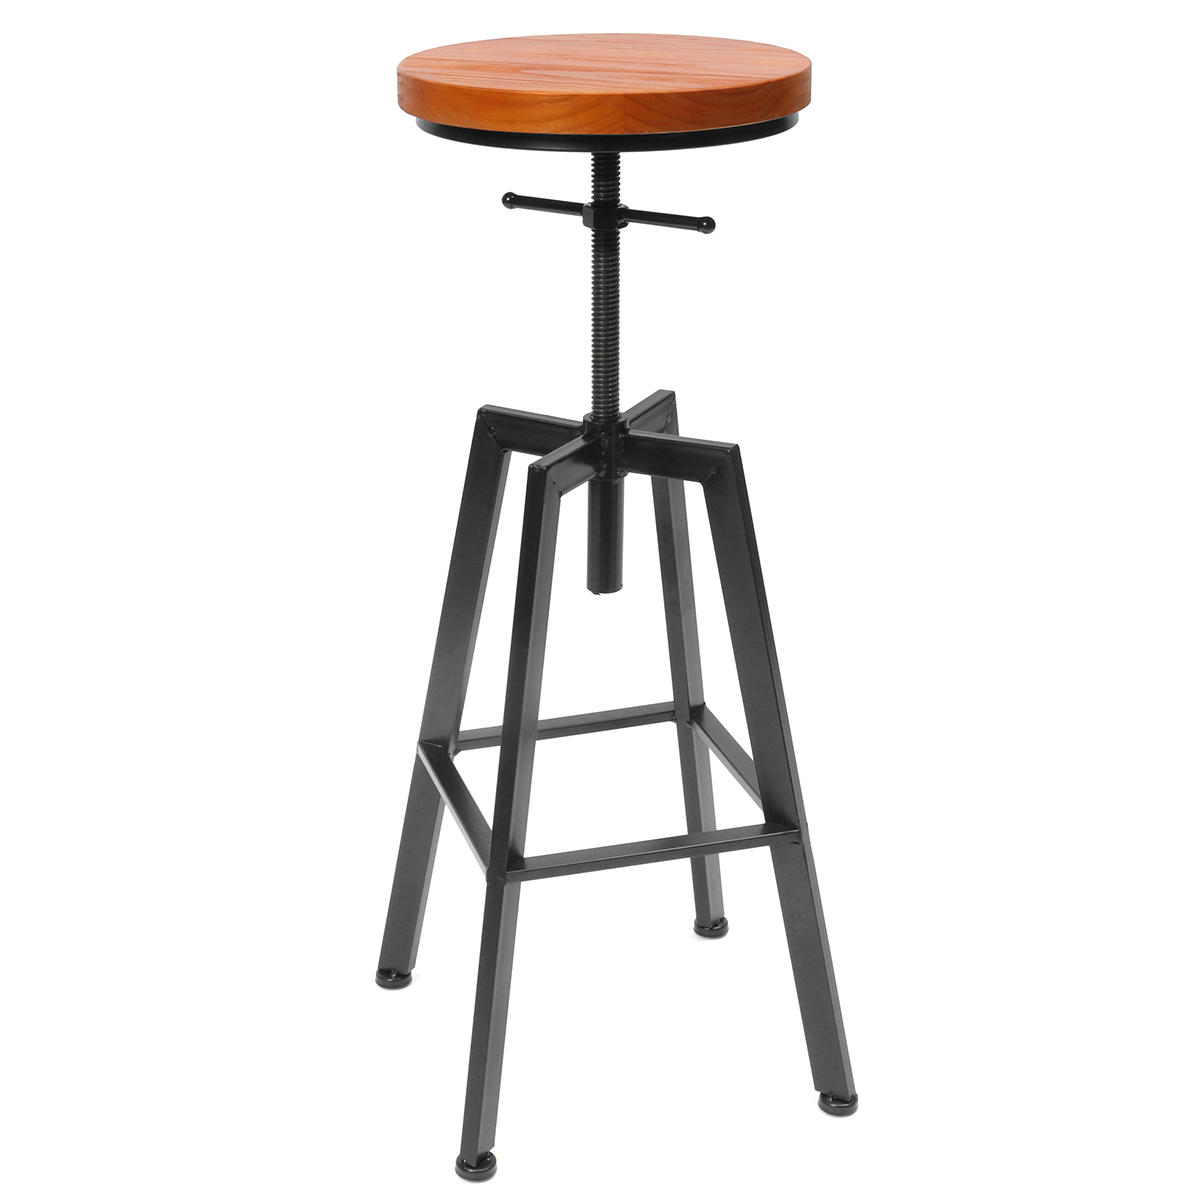 24 Inch Bar Stools With Back Adjustable Bar Chairs Wood Iron Counter